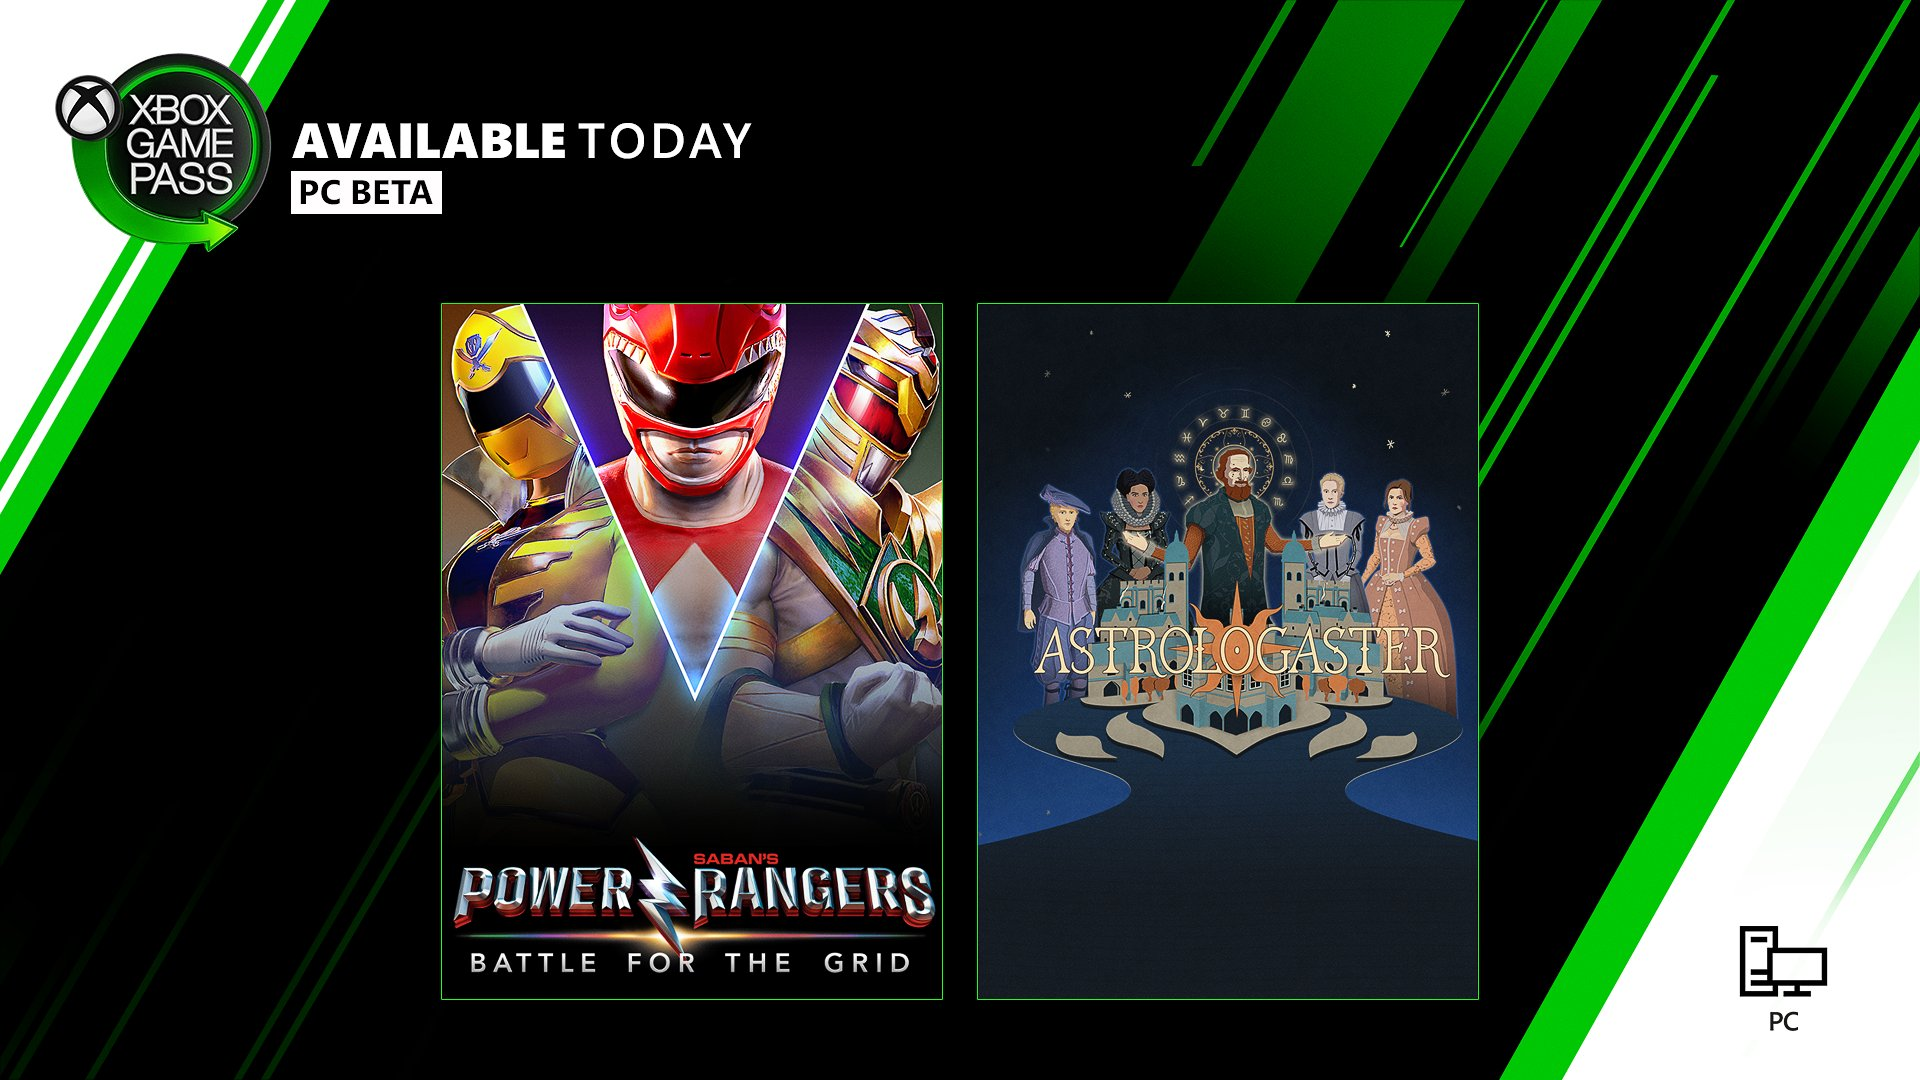 The box art for Power Rangers: Battle For The Grid and Astrologaster are placed against a white, green, and black background. The Xbox Game Pass Logo sits in the top left corner of the image. Text Reads: Available Today. PC Beta.